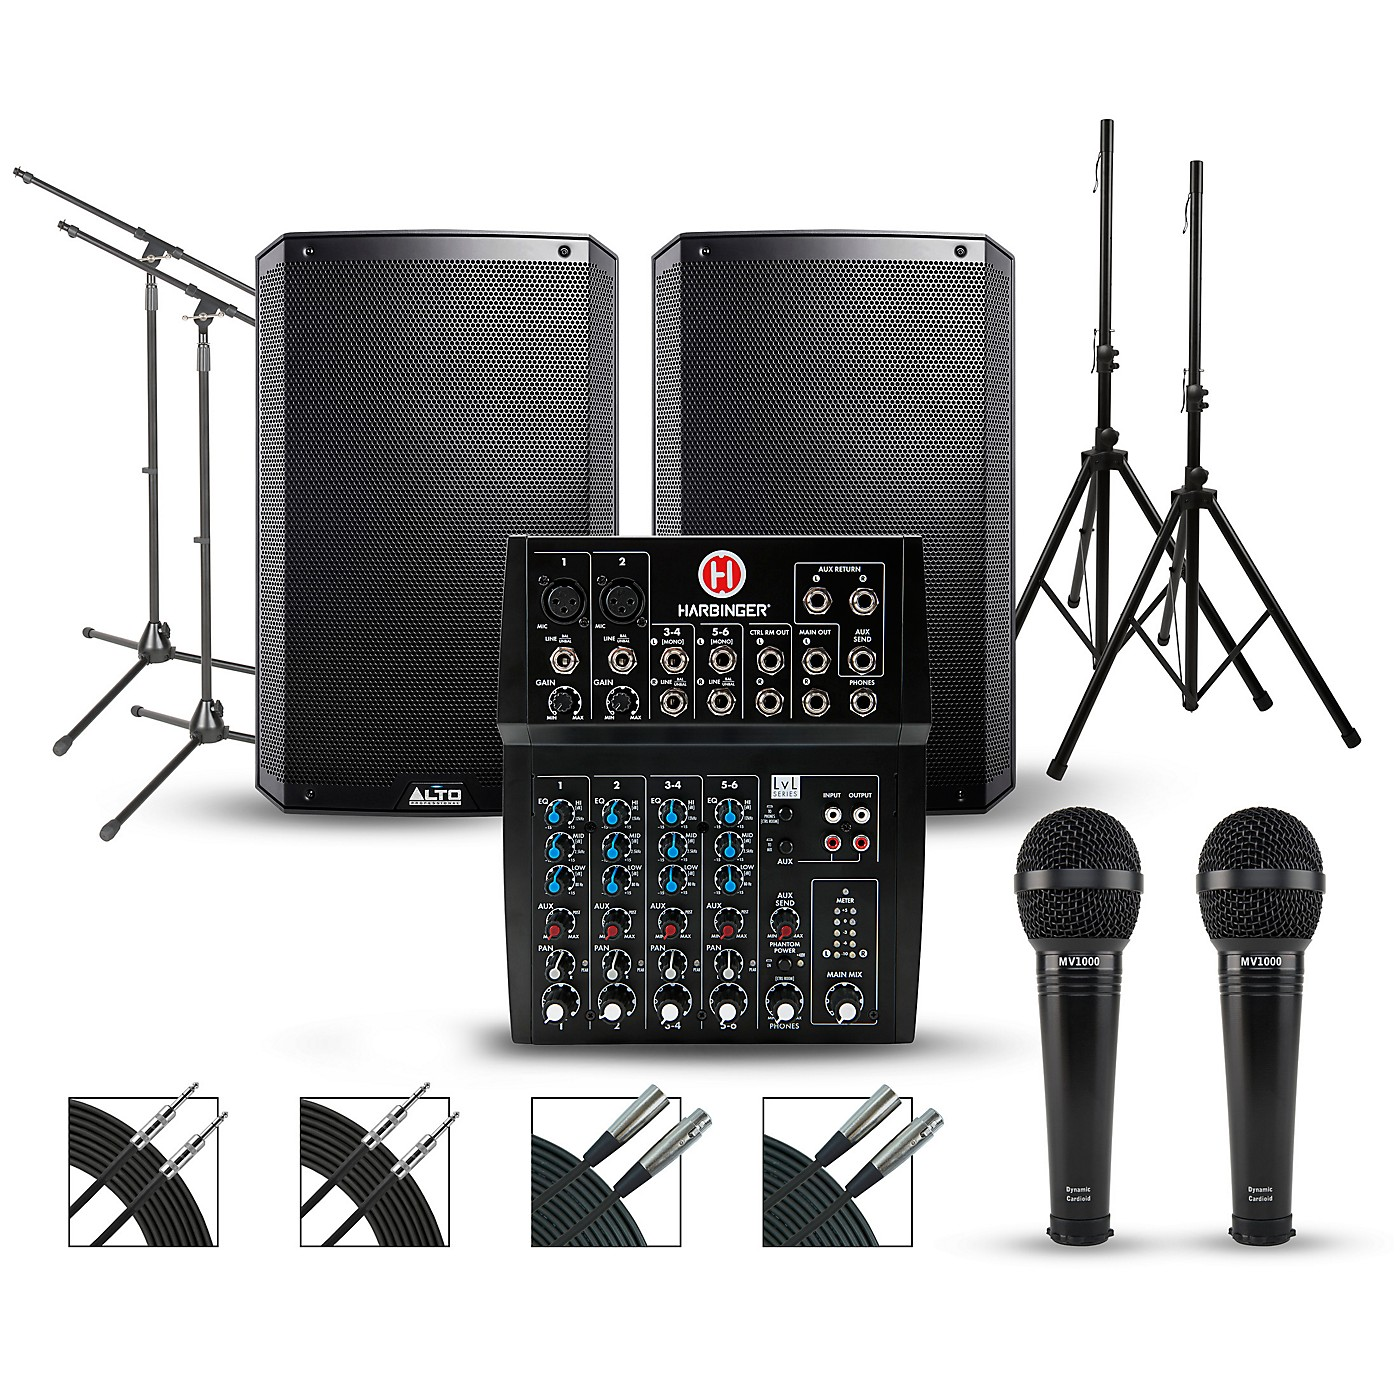 Harbinger Complete PA Package with Harbinger L802 8-channel Mixer with Alto Truesonic 2 Series Active Speakers thumbnail